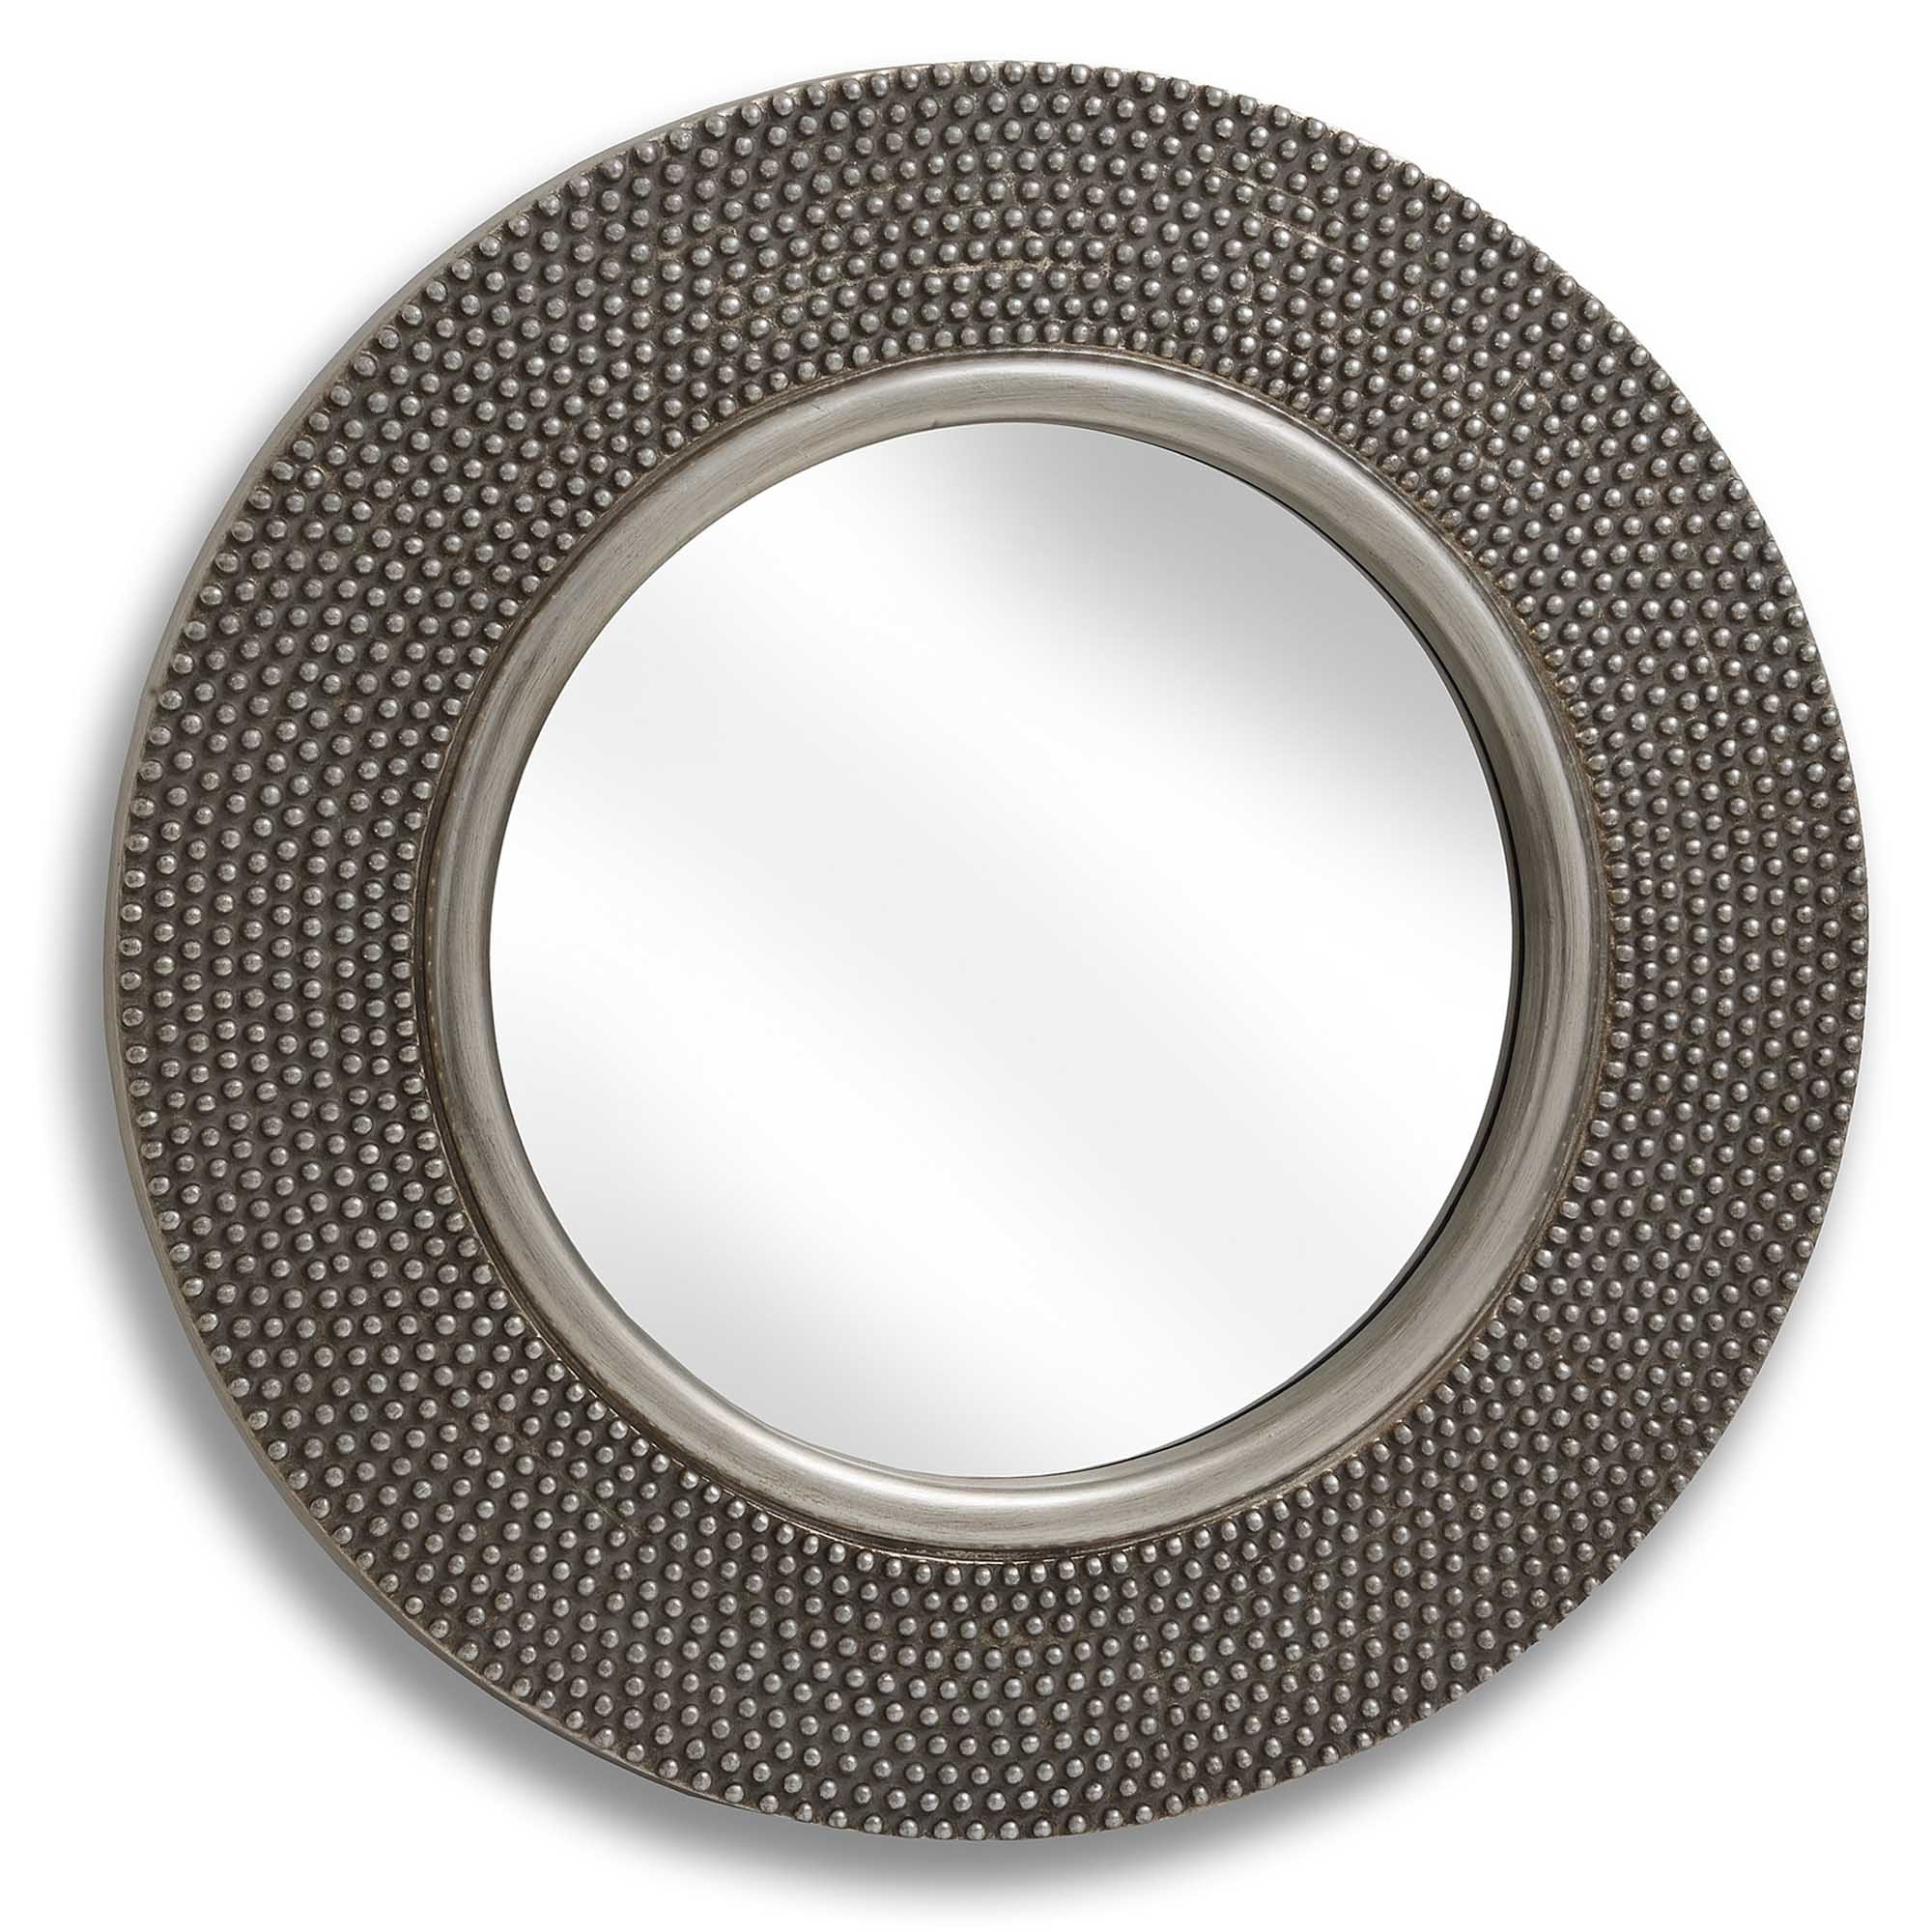 2020 Large Round Beaded Wall Mirror Within Large Circular Wall Mirrors (View 1 of 20)